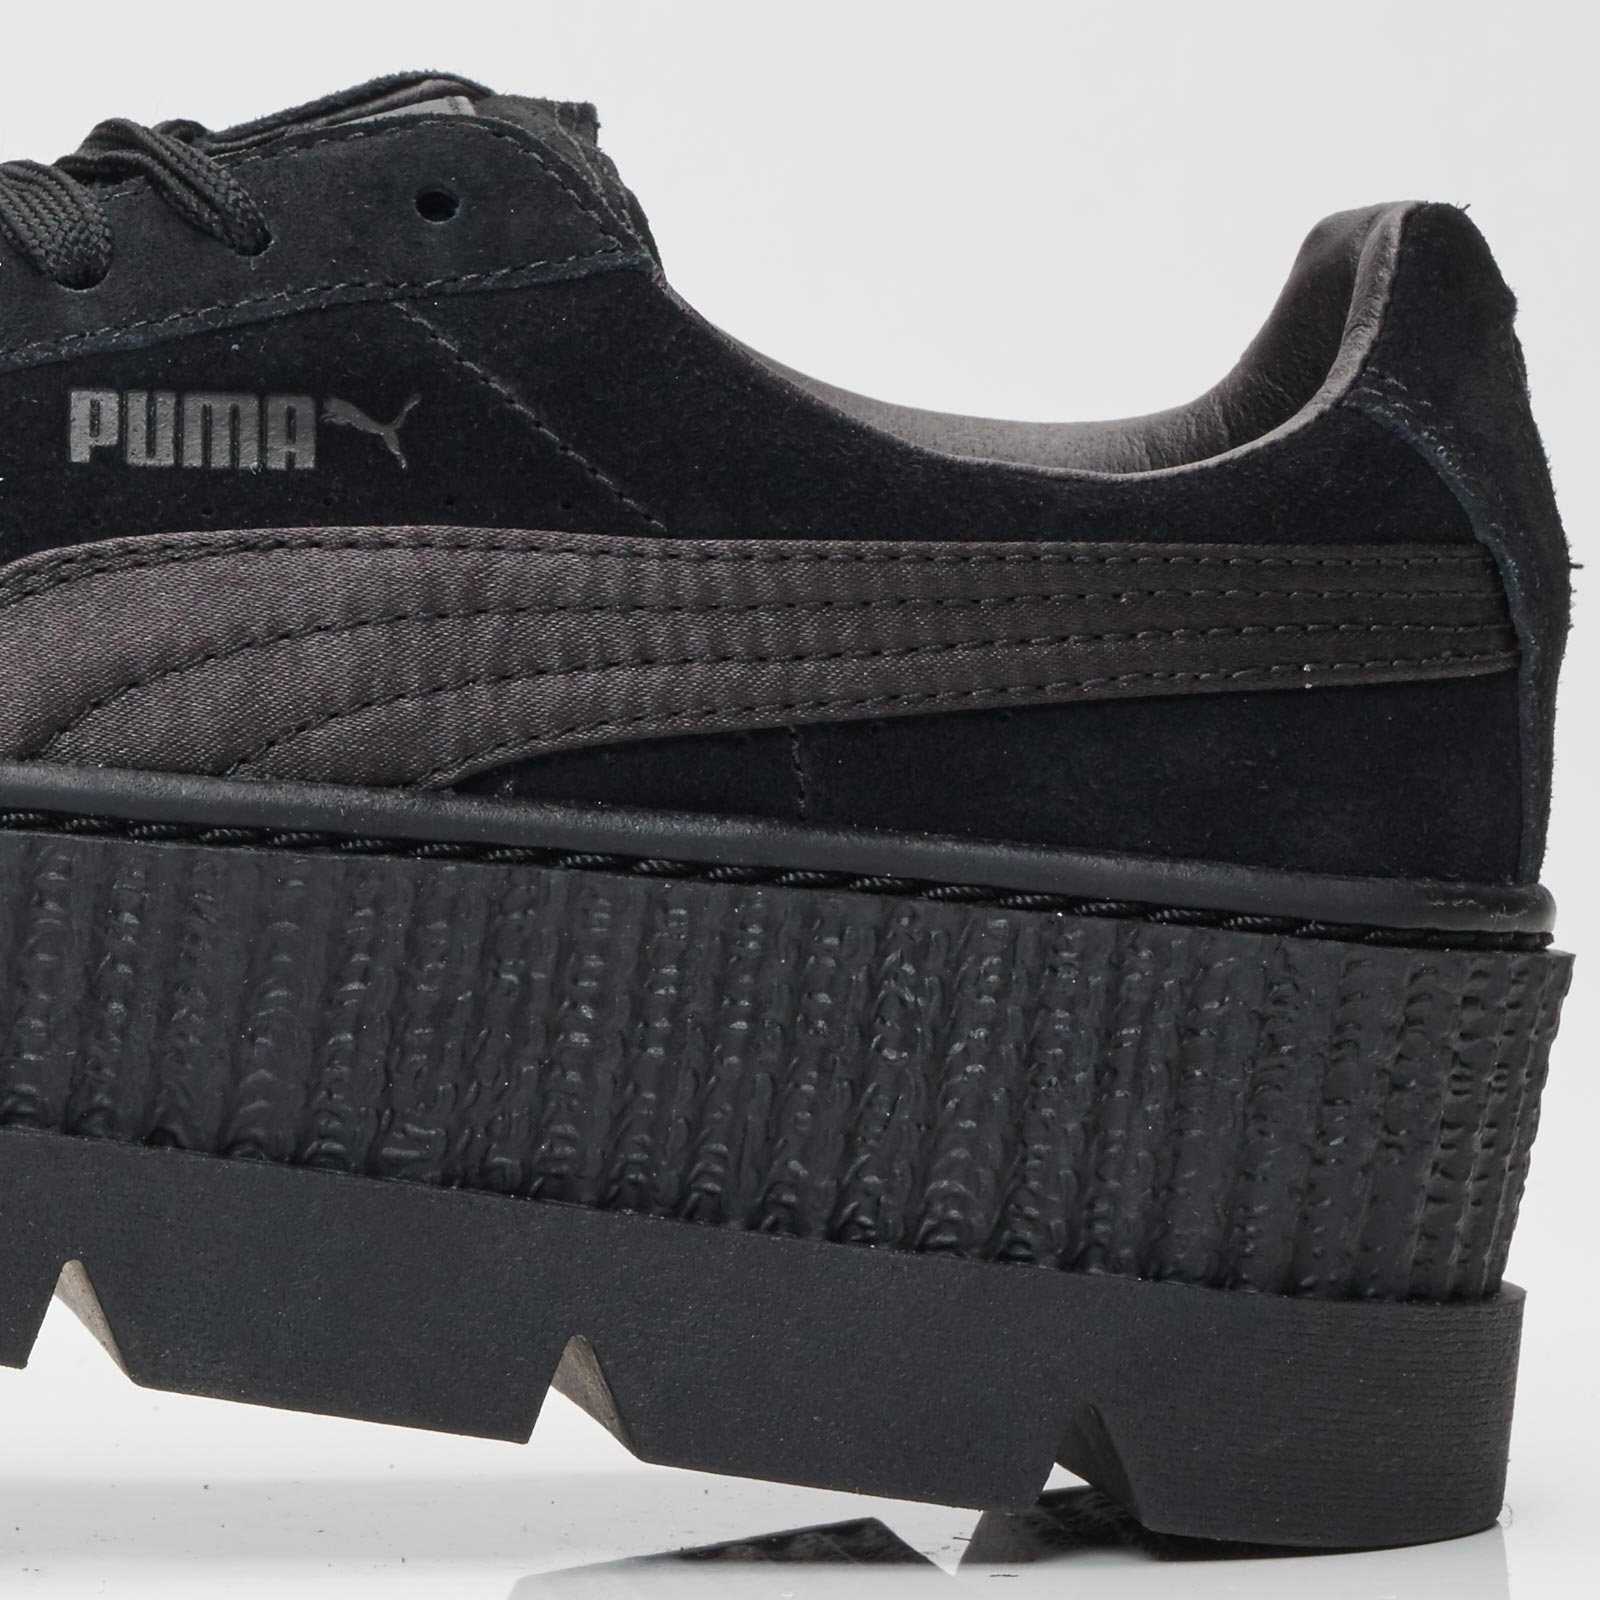 47f02138fbb569 Puma Cleated Creeper Suede Wns - 366268-04 - Sneakersnstuff ...